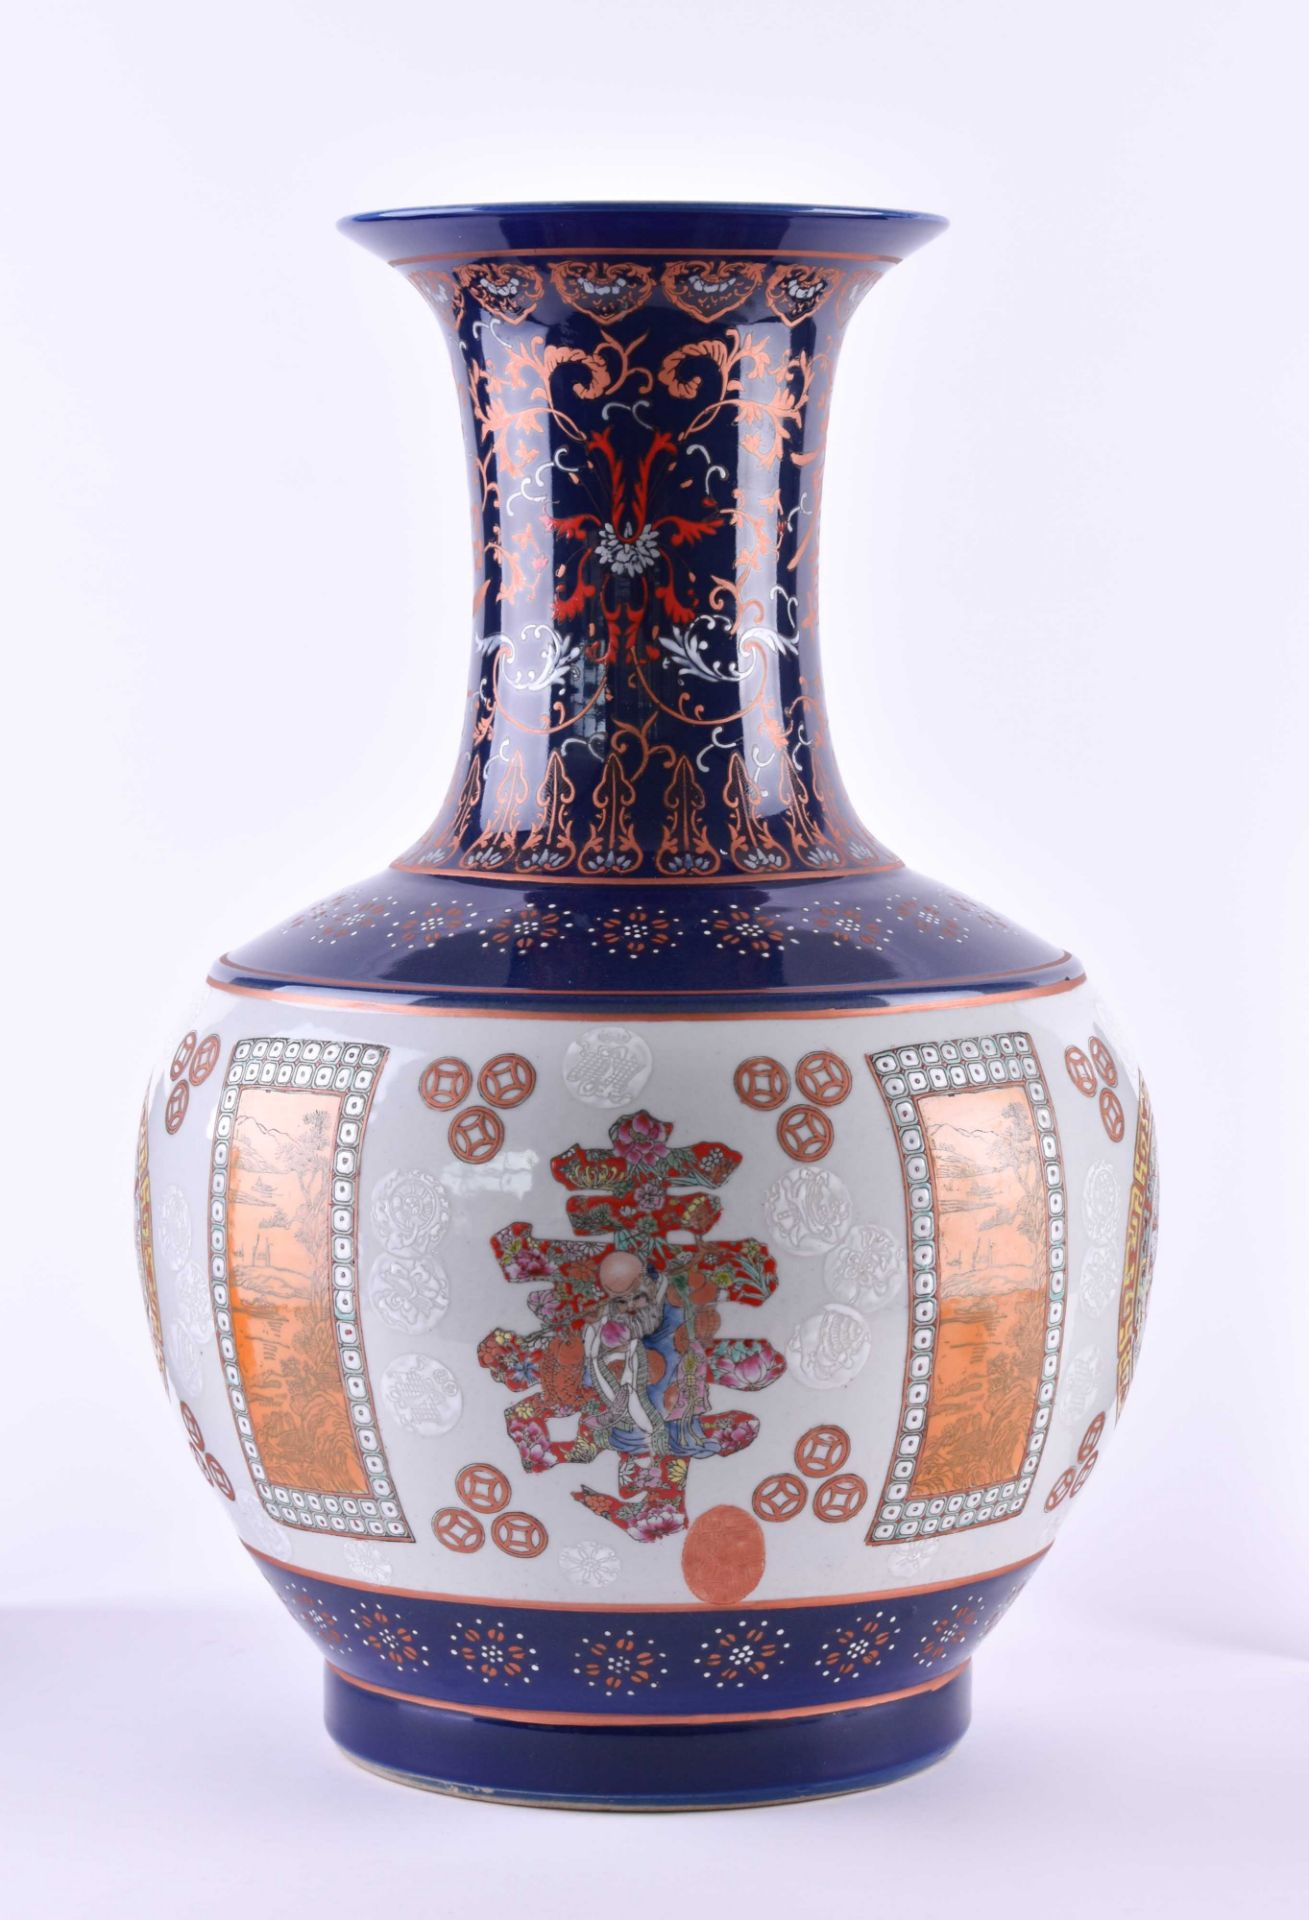 Floor vase China - Image 2 of 7